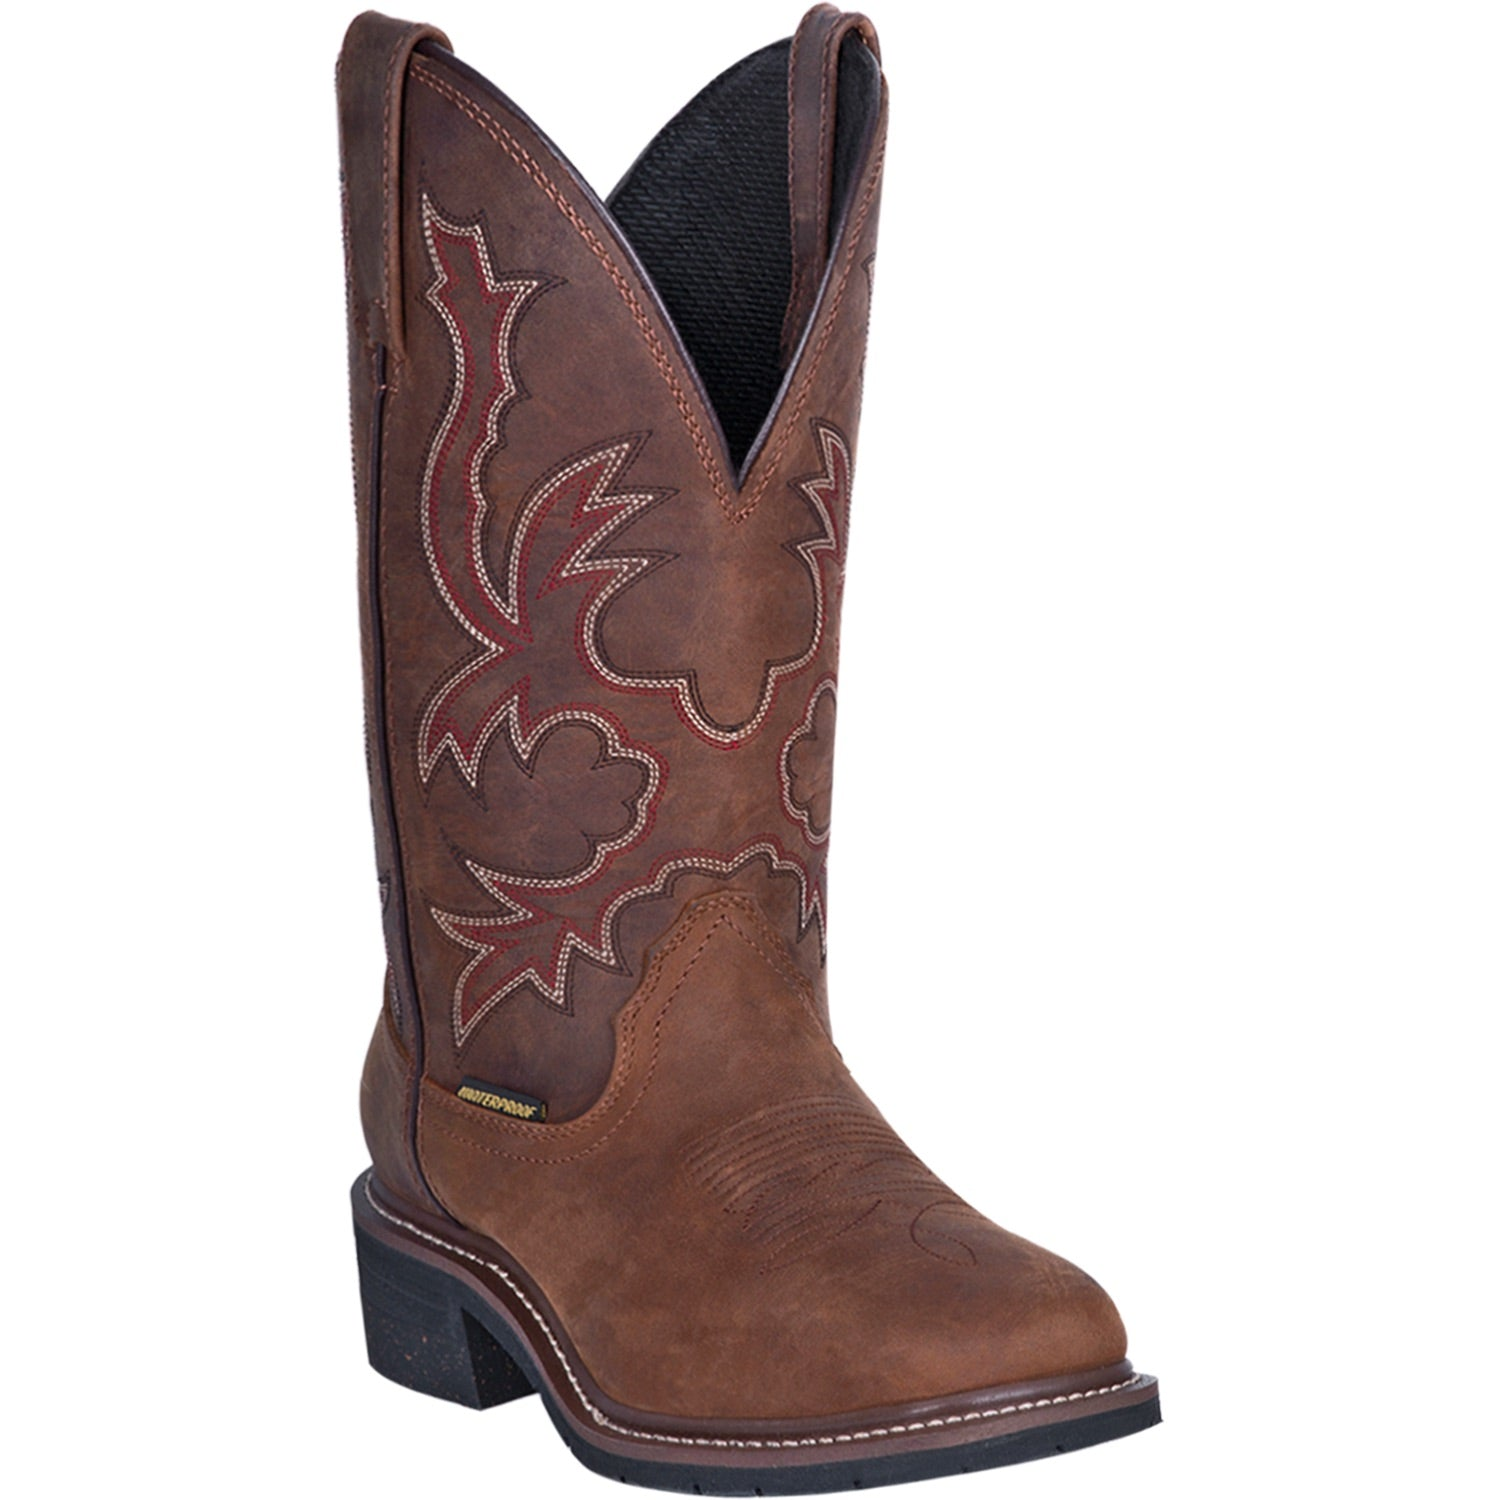 NOGALES WATERPROOF LEATHER BOOT 15521806319658